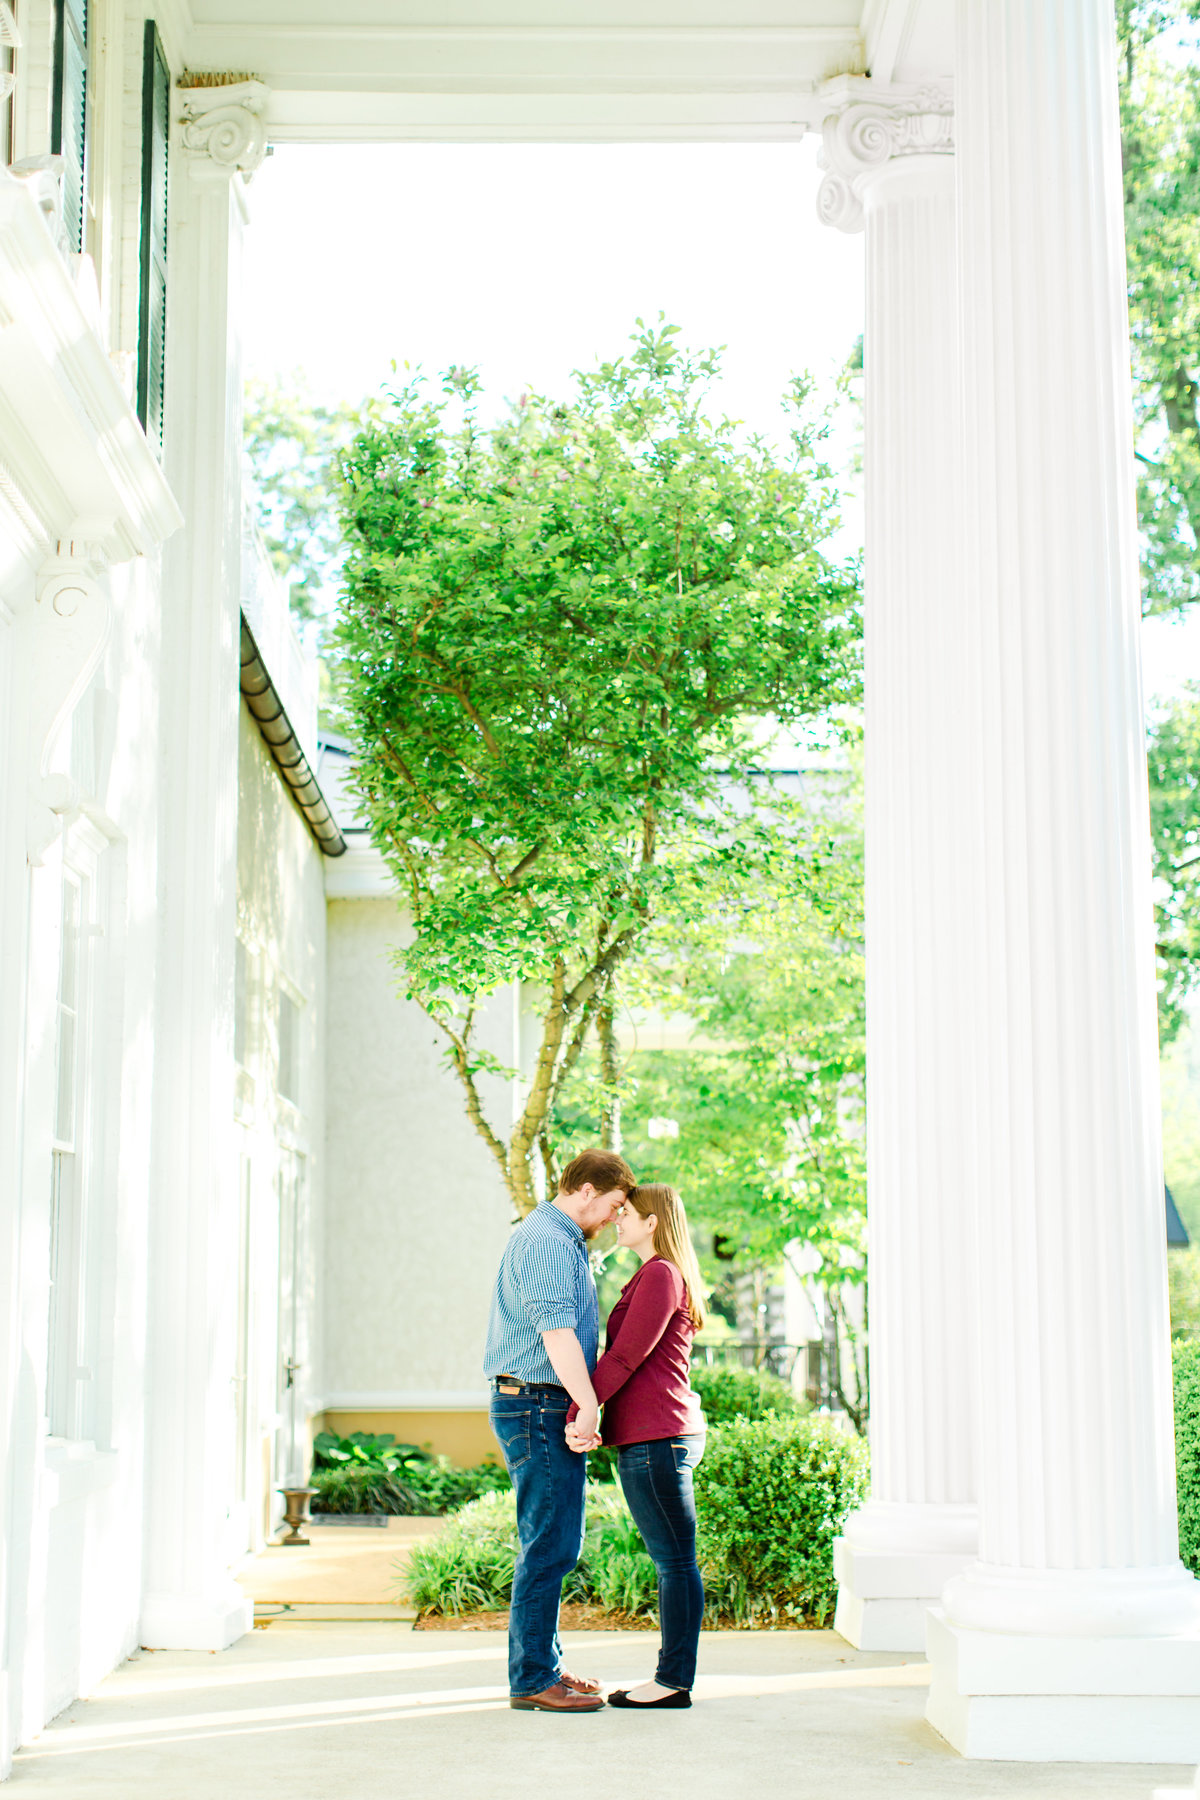 engagement-session-at-whitehall-manor-in-bluemont-virginia-emily-sacra-photography-23